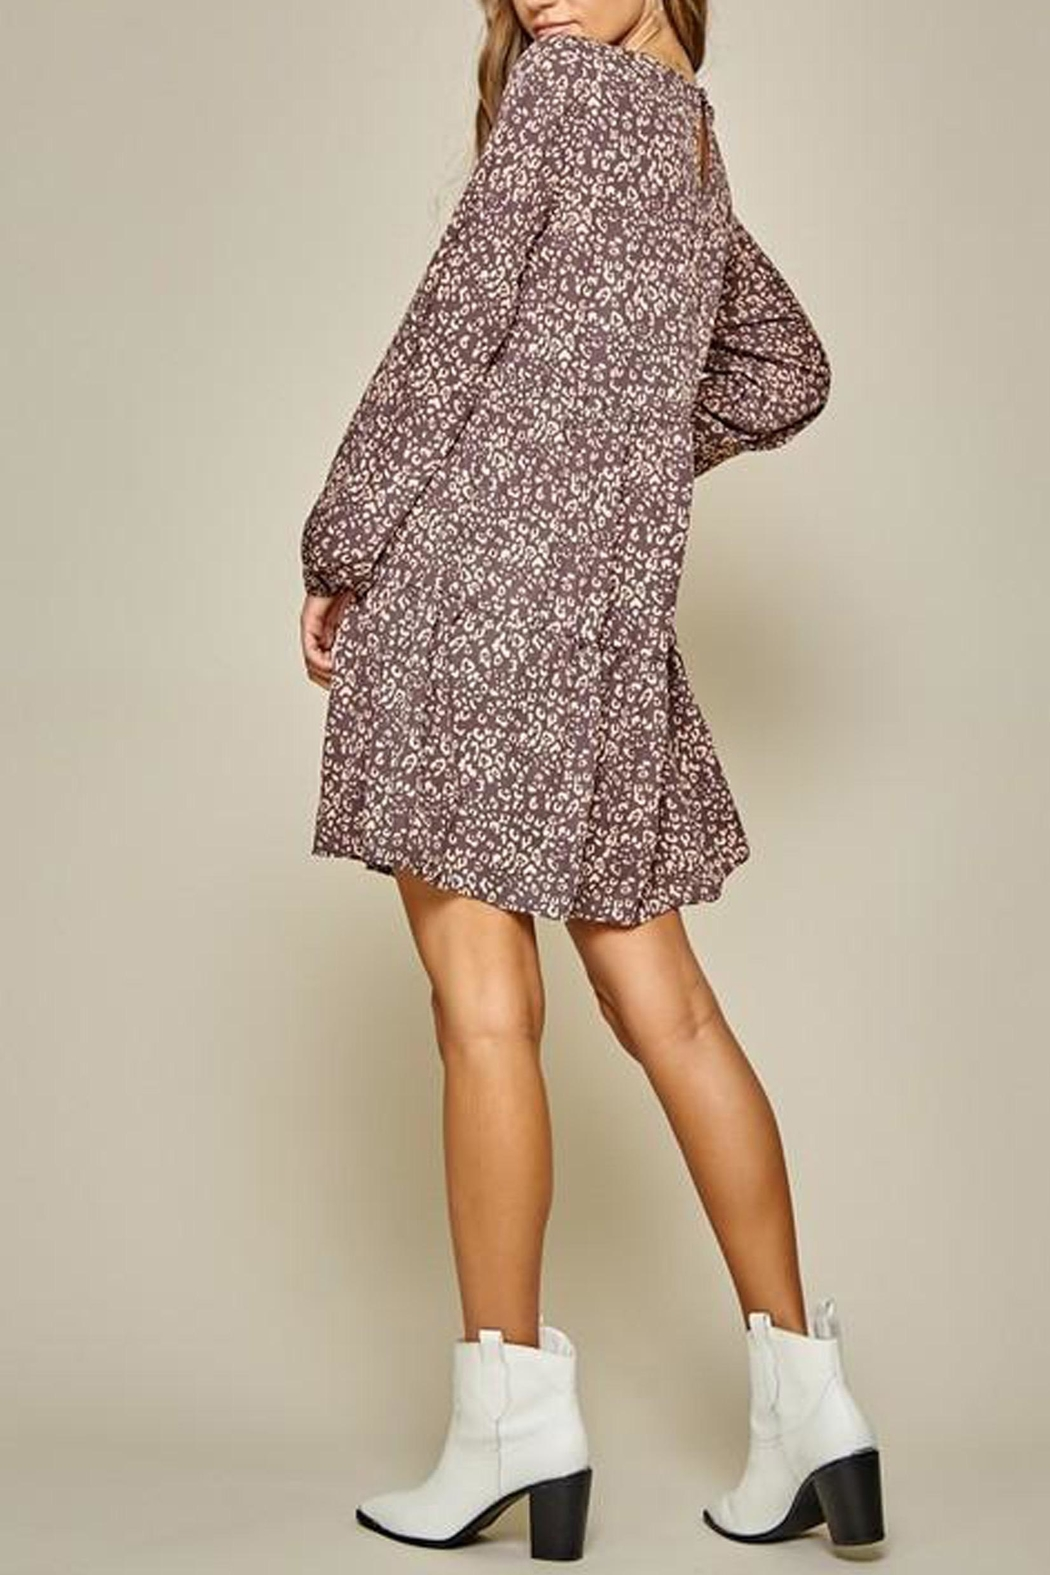 Andree by Unit Leopard Tiered Shift-Dress - Back Cropped Image